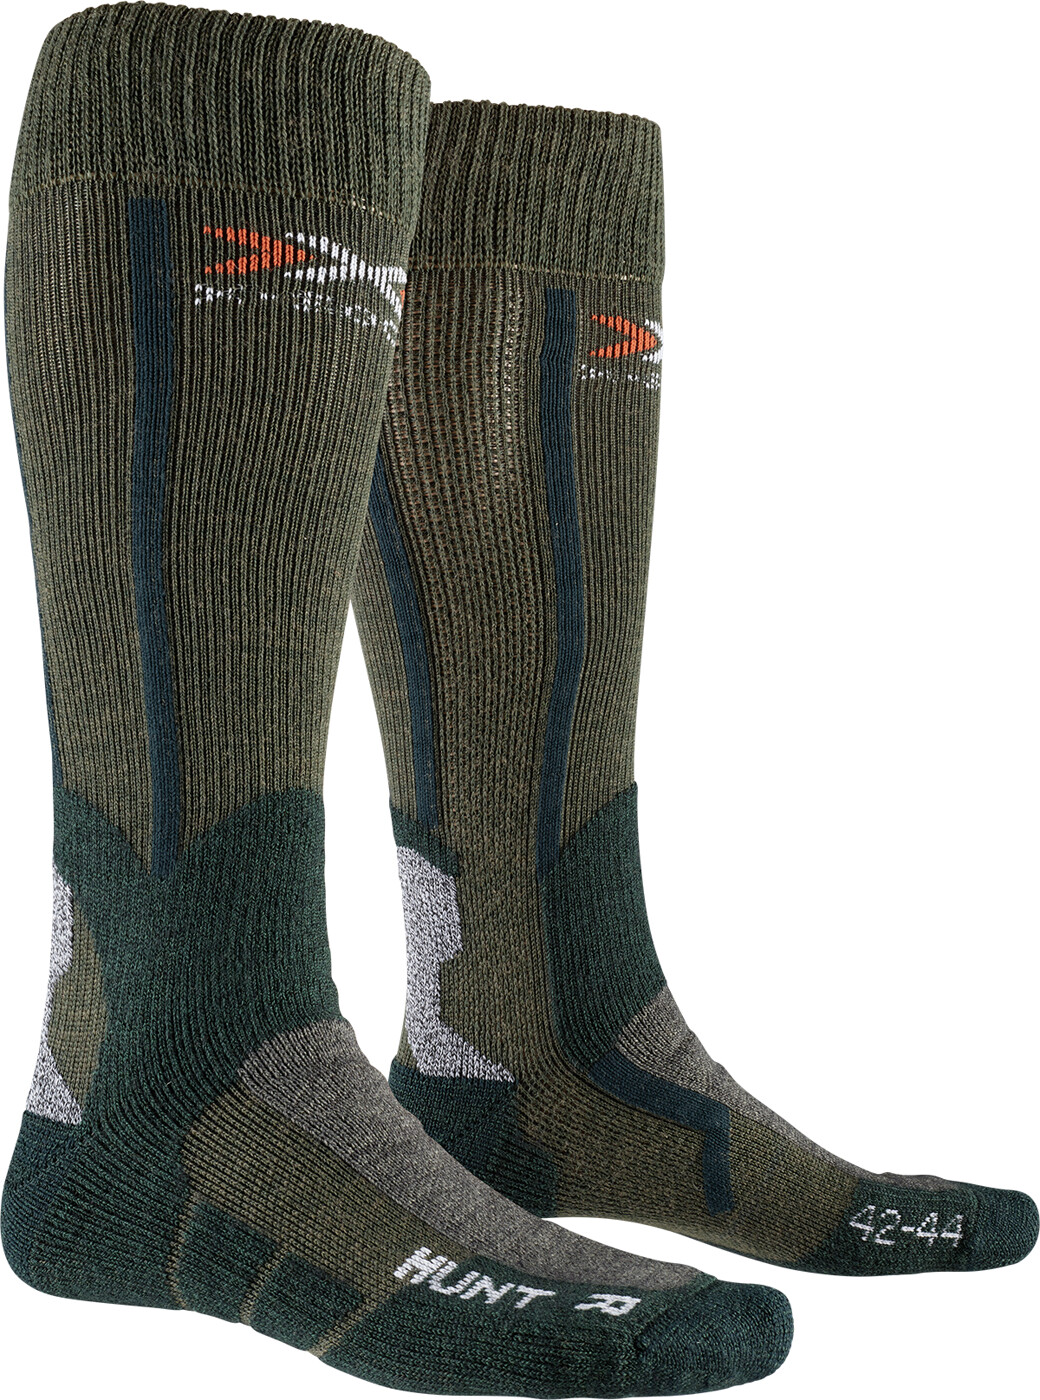 X-BIONIC X-SOCKS® HUNT LONG - Herren